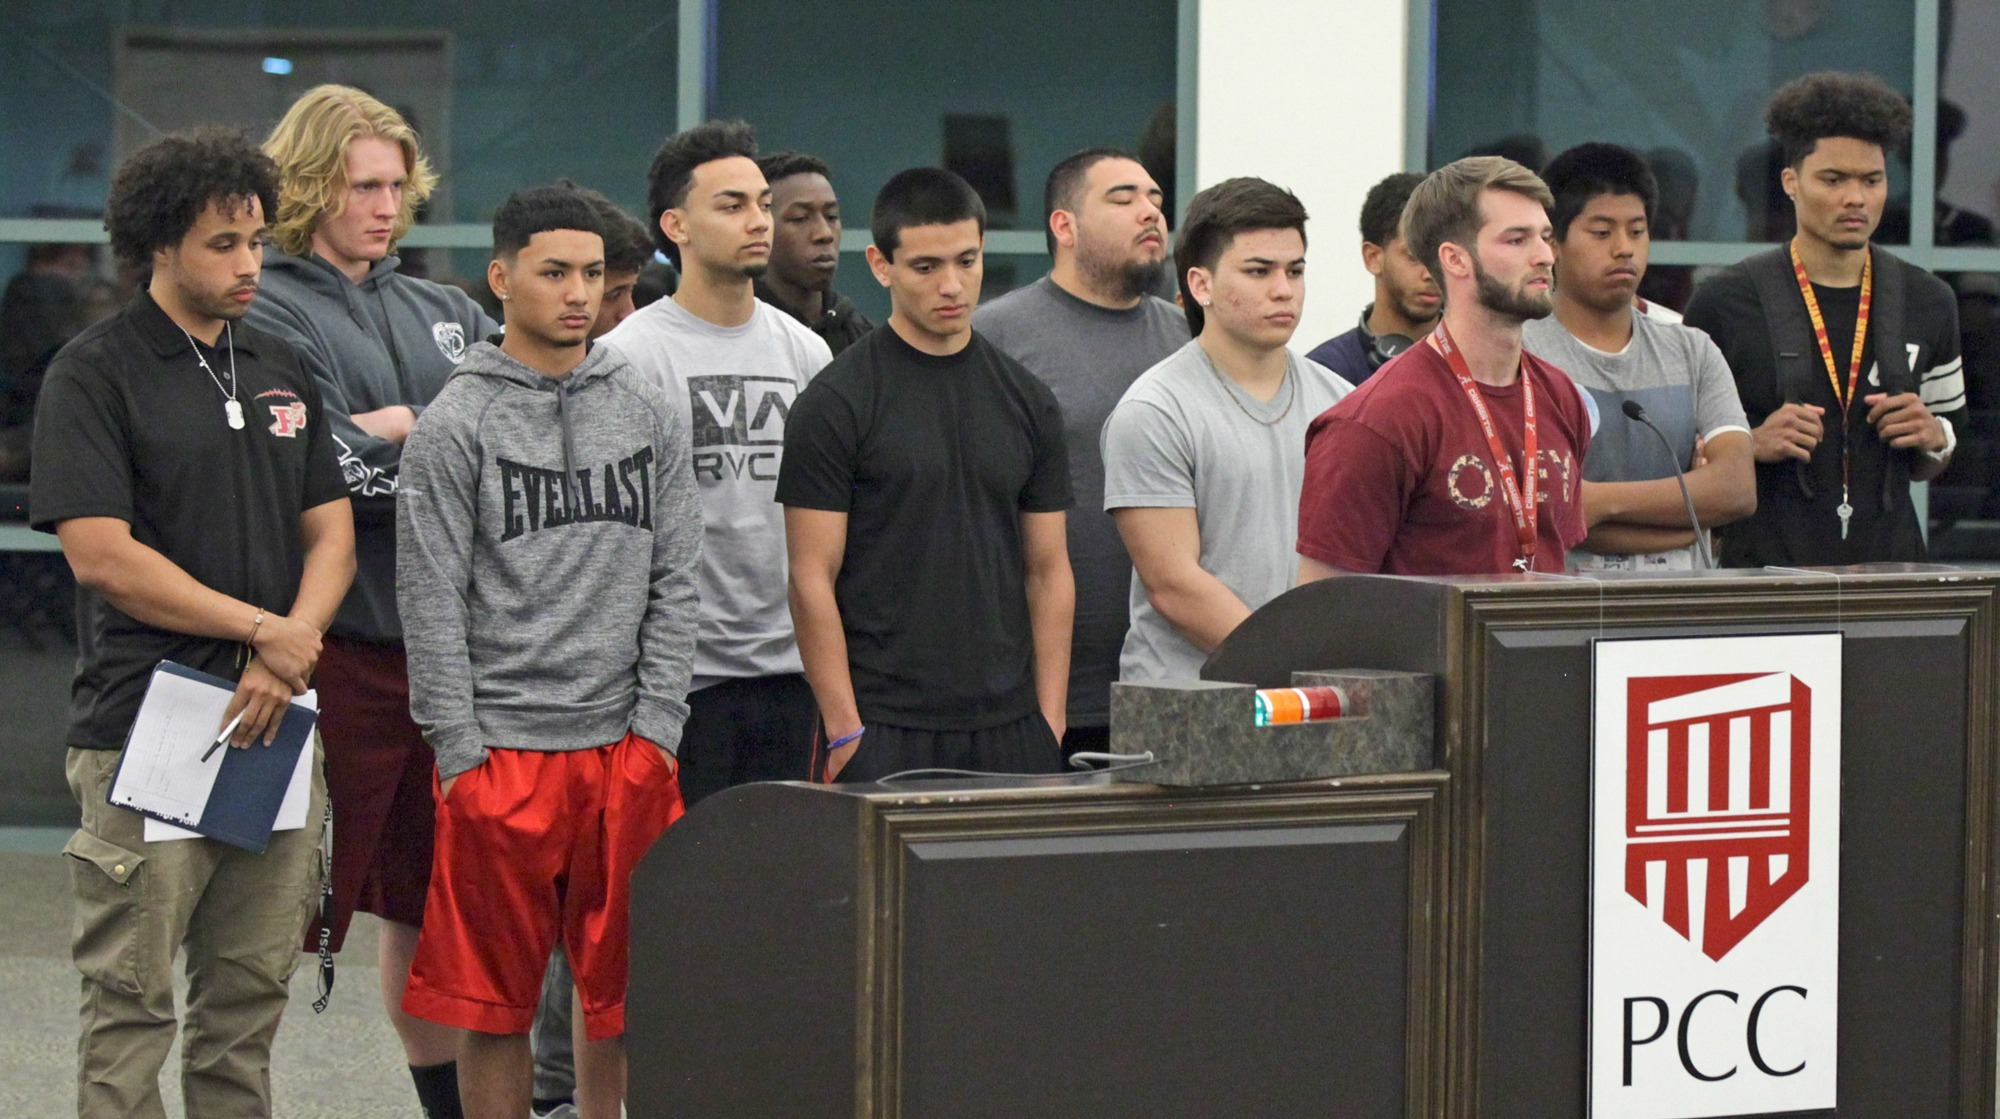 Katja Liebing/Courier Member of the Board of Trustees meeting listen to the football players of Pasadena City College speak out about the removal of their coach Thom Kaumeyer during a meeting on Wednesday, February 24, 2016.